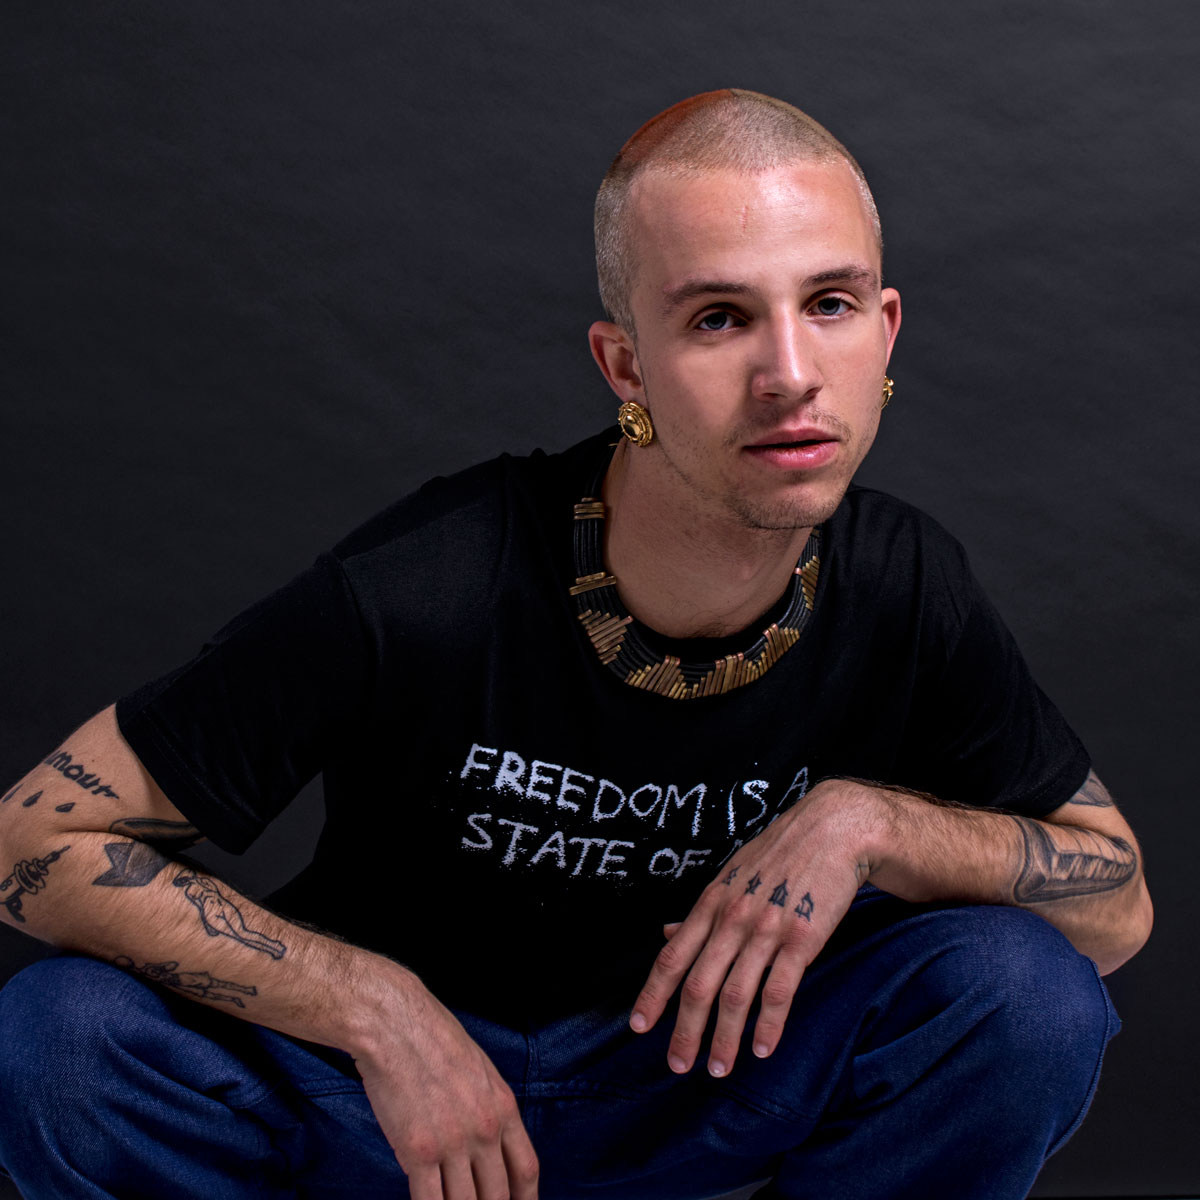 FREEDOM T-SHIRT STREETWEAR LOOKBOOK